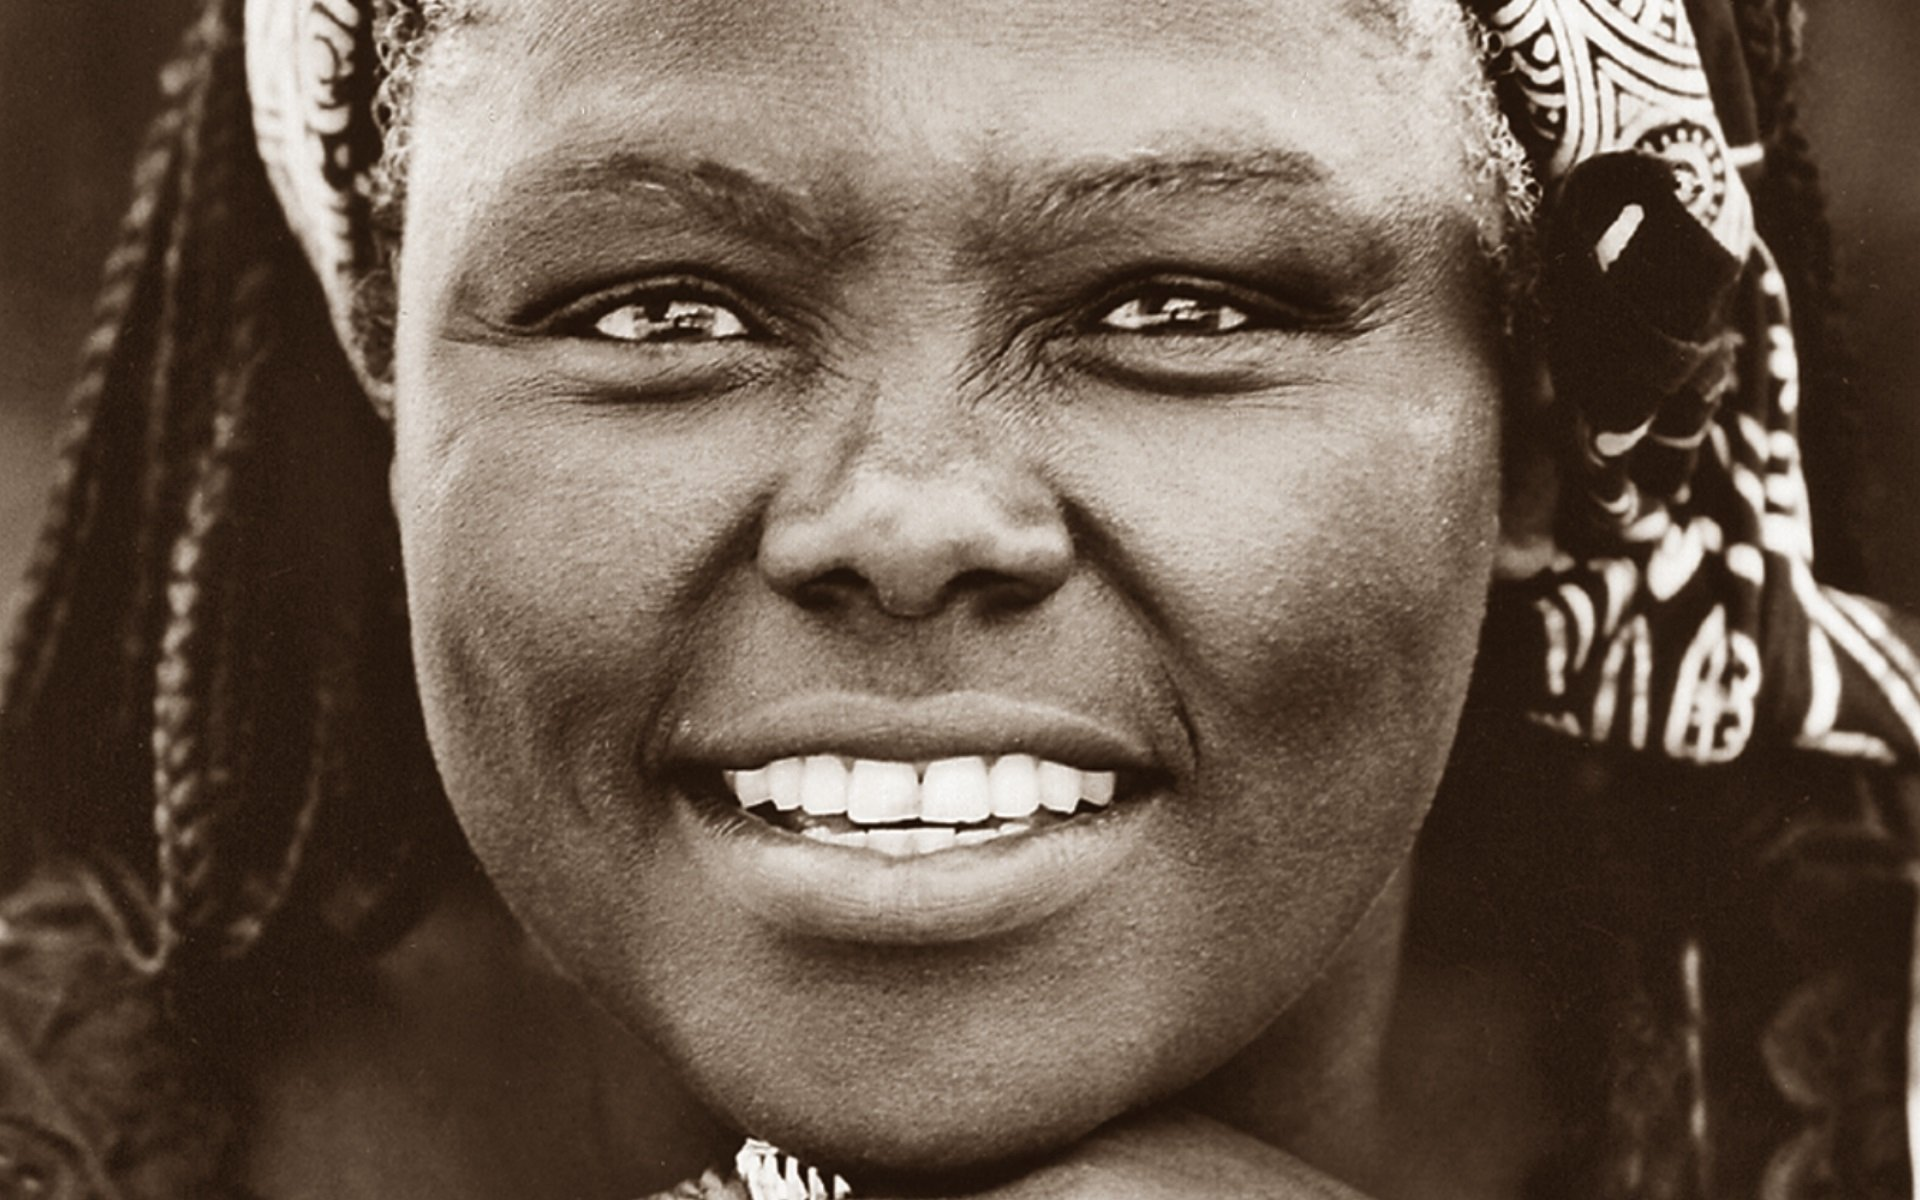 We celebrate Prof Wangari Maathai for helping keep Kenya green. Because of her, we can enjoy a rich fauna and flora in the country.